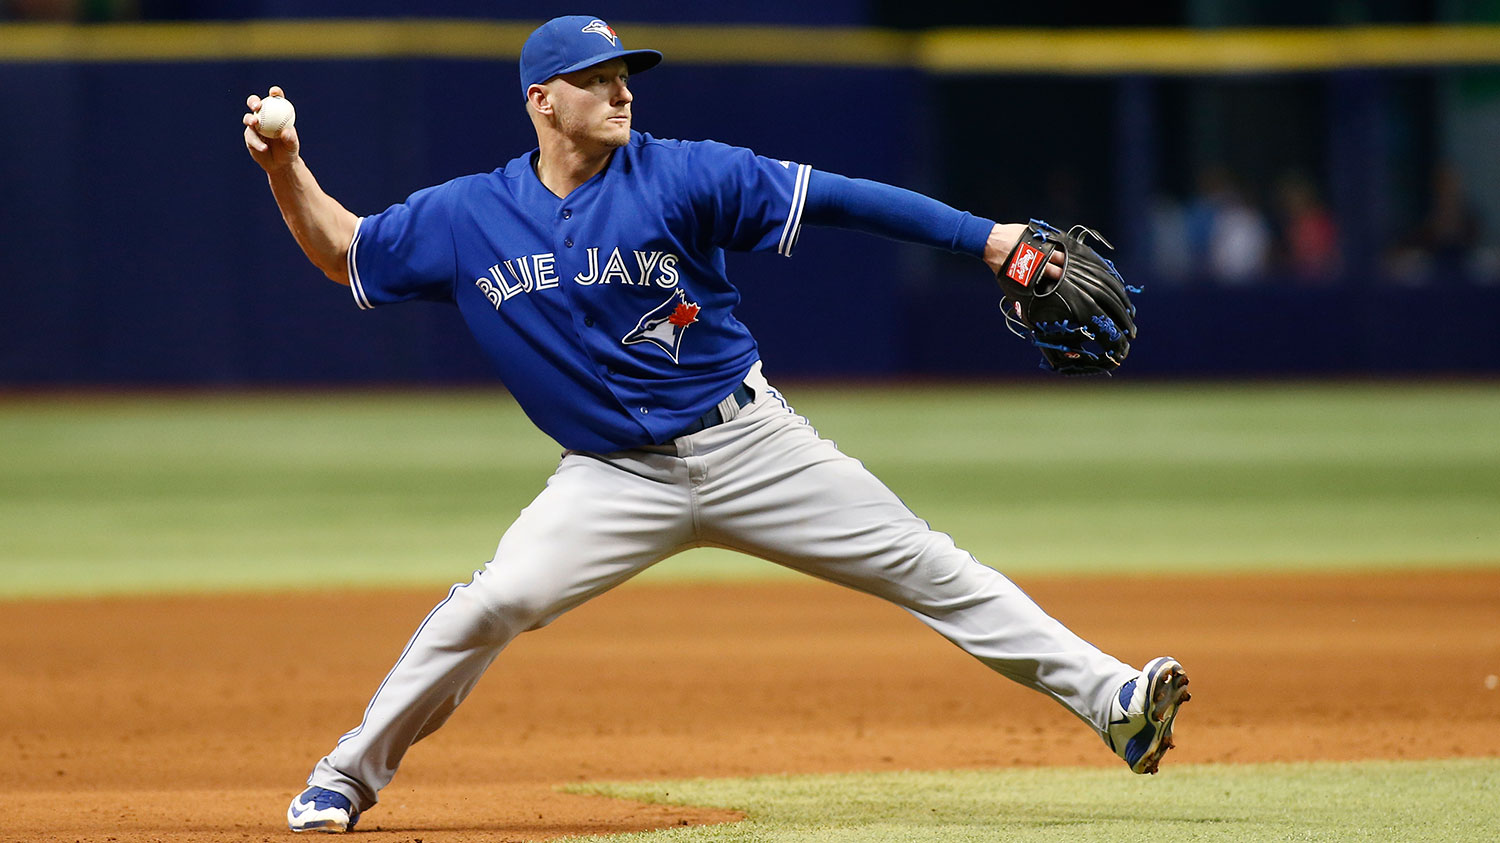 Josh Donaldson delivered an MVP-level regular season and could give Toronto a playoff boost, too.